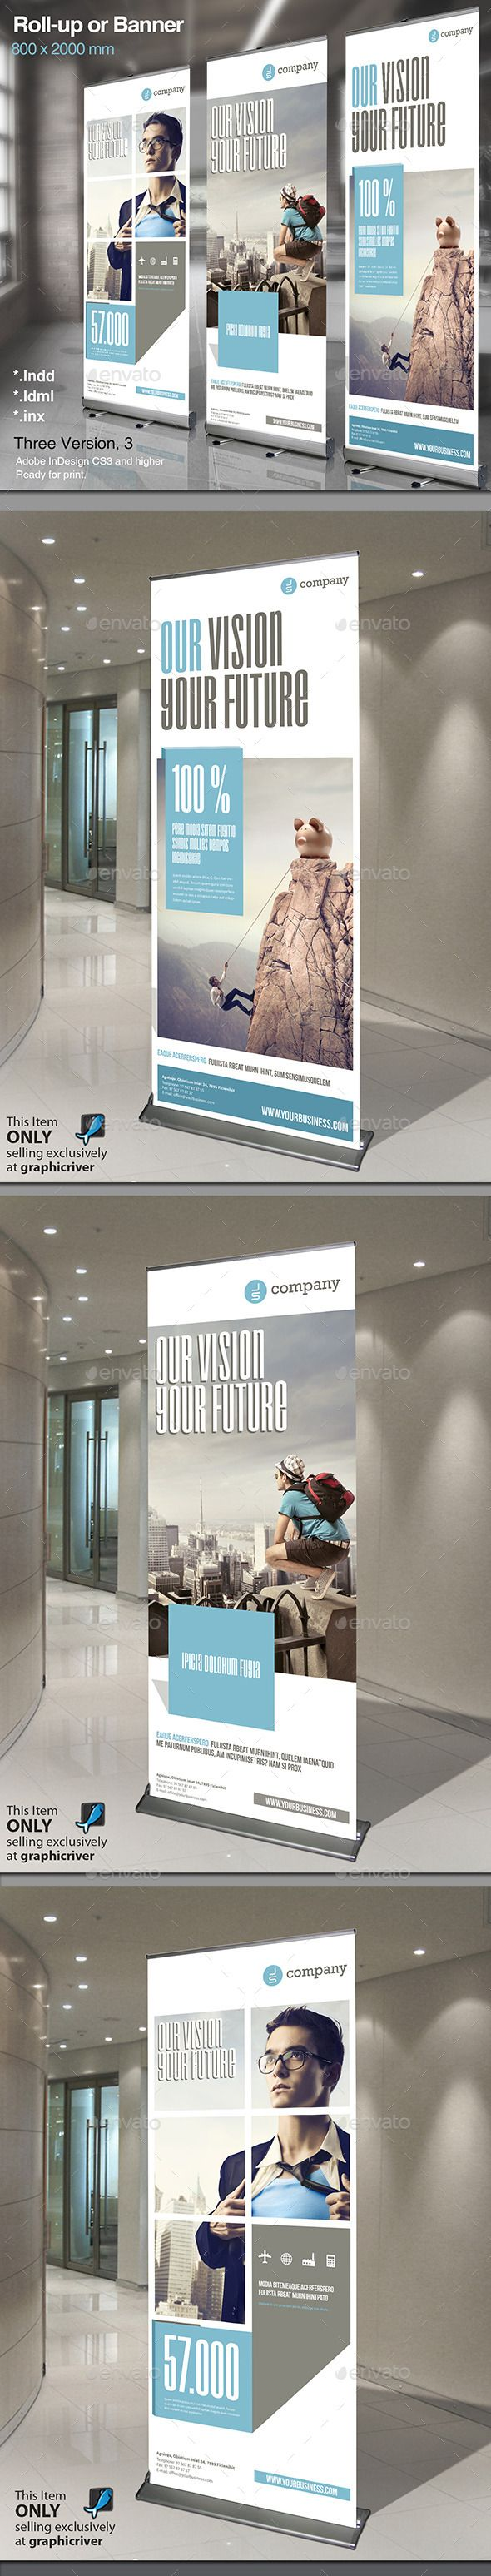 Corporate Rollup or Banner Vol. 2 — InDesign INDD #financial #people • Available here → https://graphicriver.net/item/corporate-rollup-or-banner-vol-2/12959889?ref=pxcr